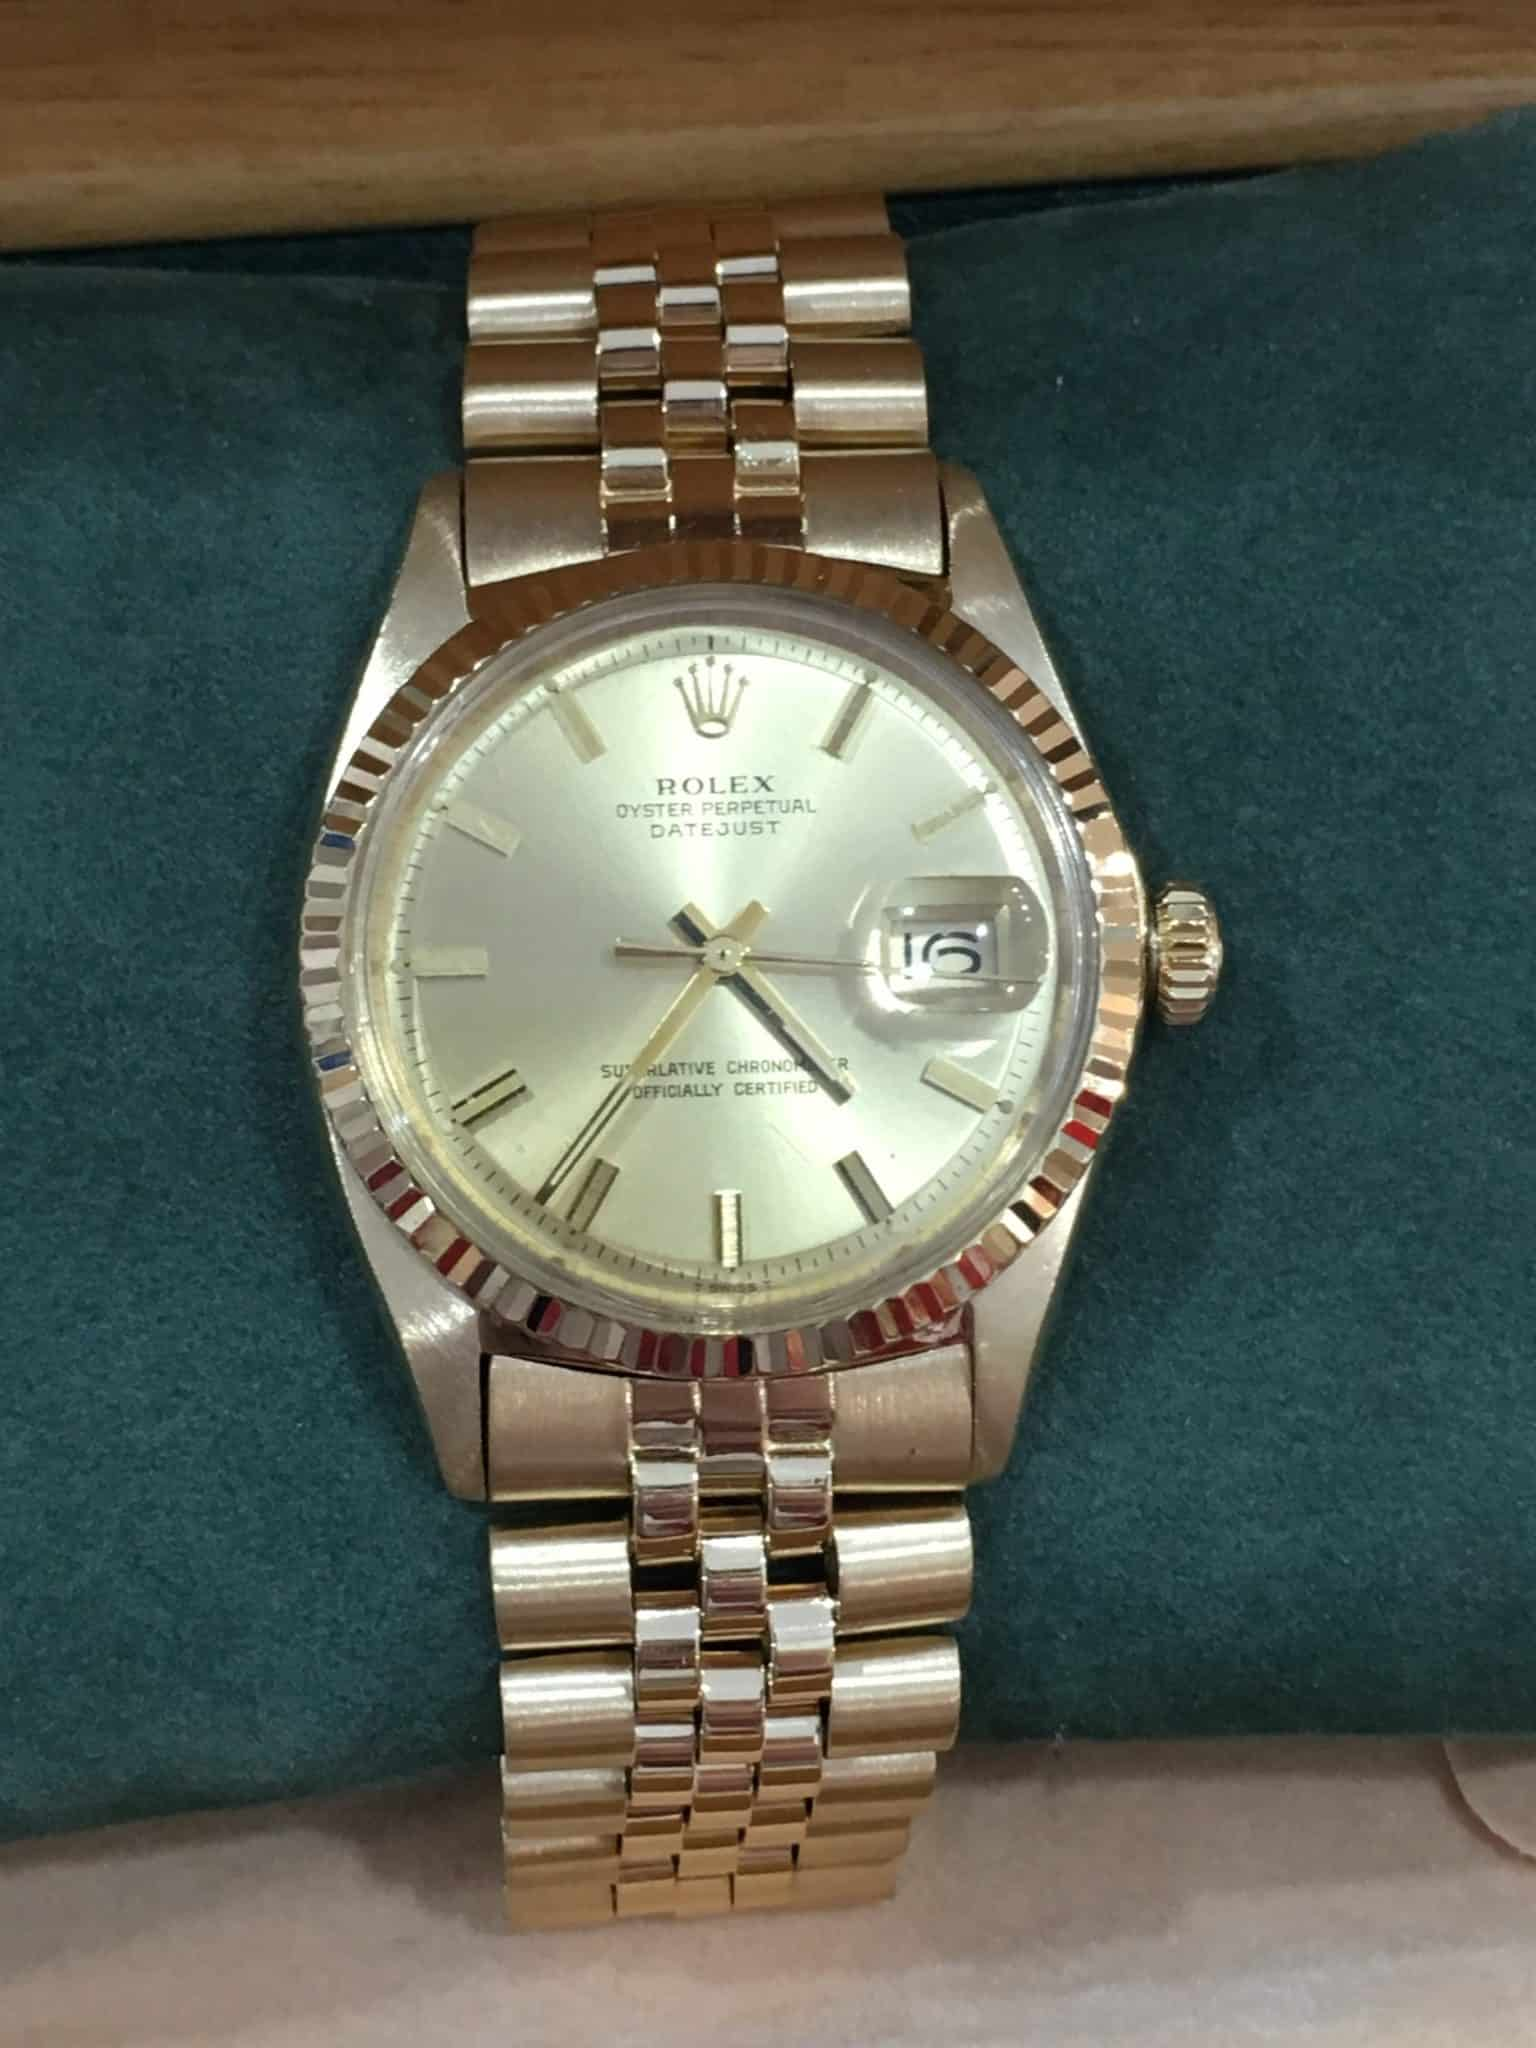 important have caseback fs i rare jaeger there cgi been could the forums enicar debates on used to of be prefer index seems chronotrader are production whether however cal original and dsc but these watches unitime early